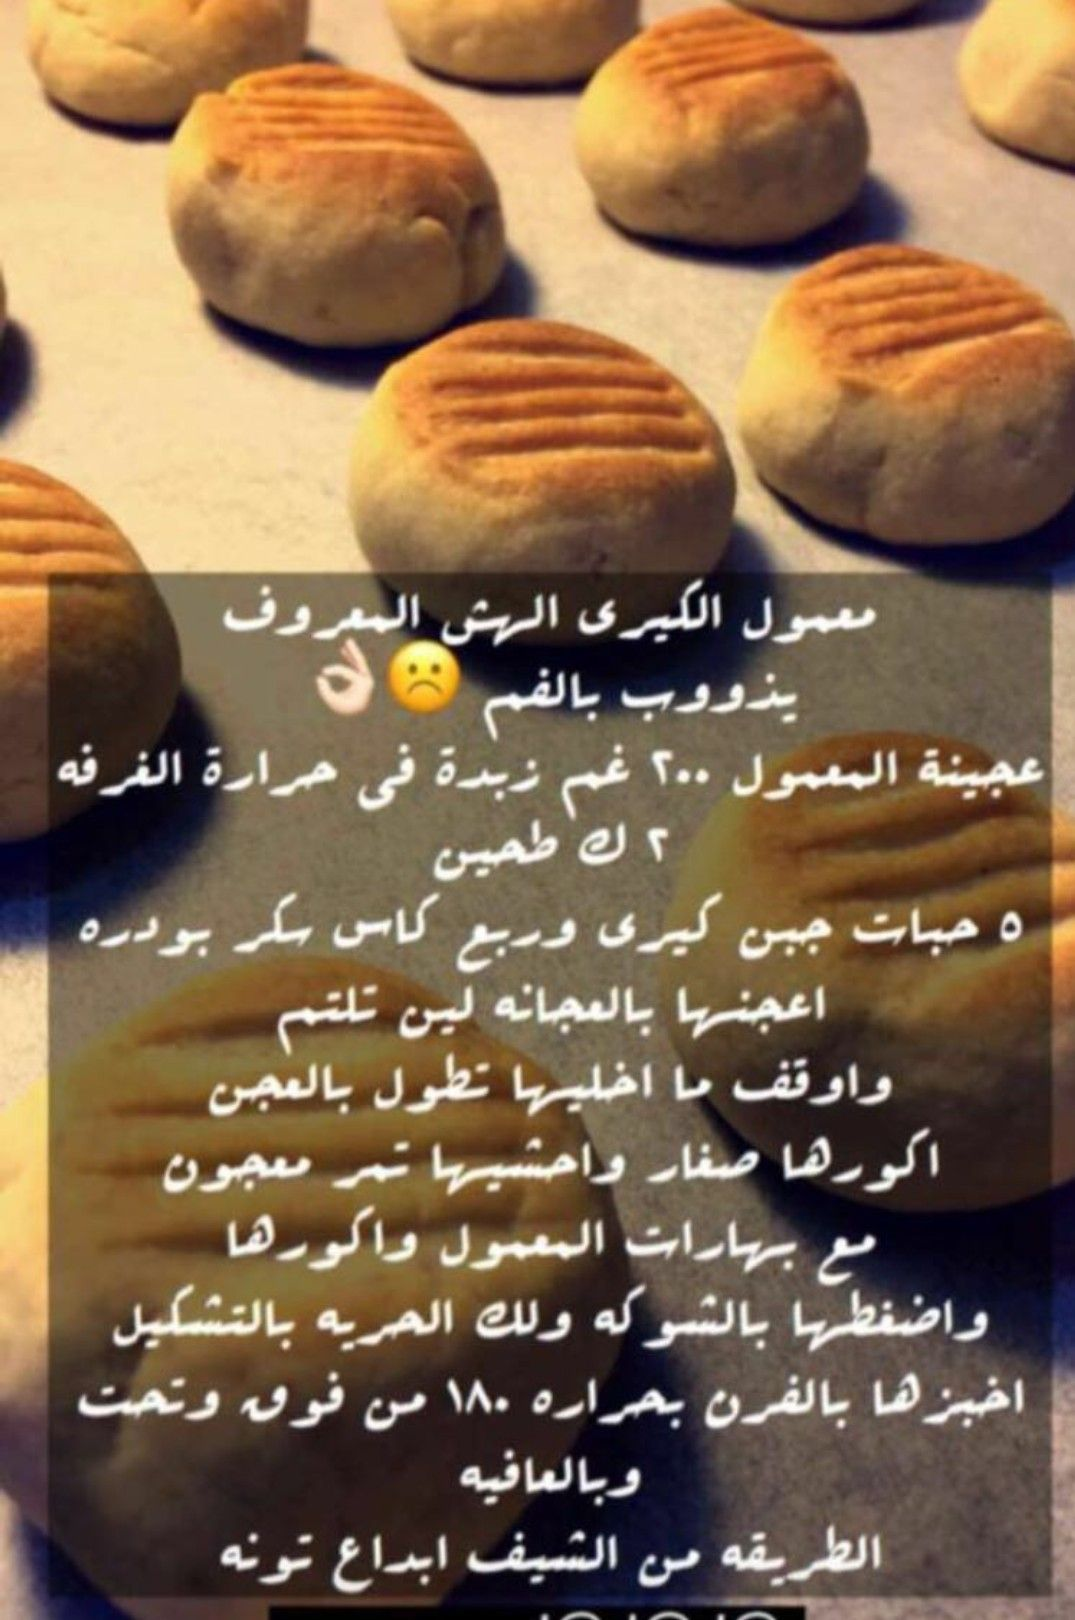 Pin By Mam On حلويات Sweets Recipes Cooking Recipes Desserts Yummy Food Dessert